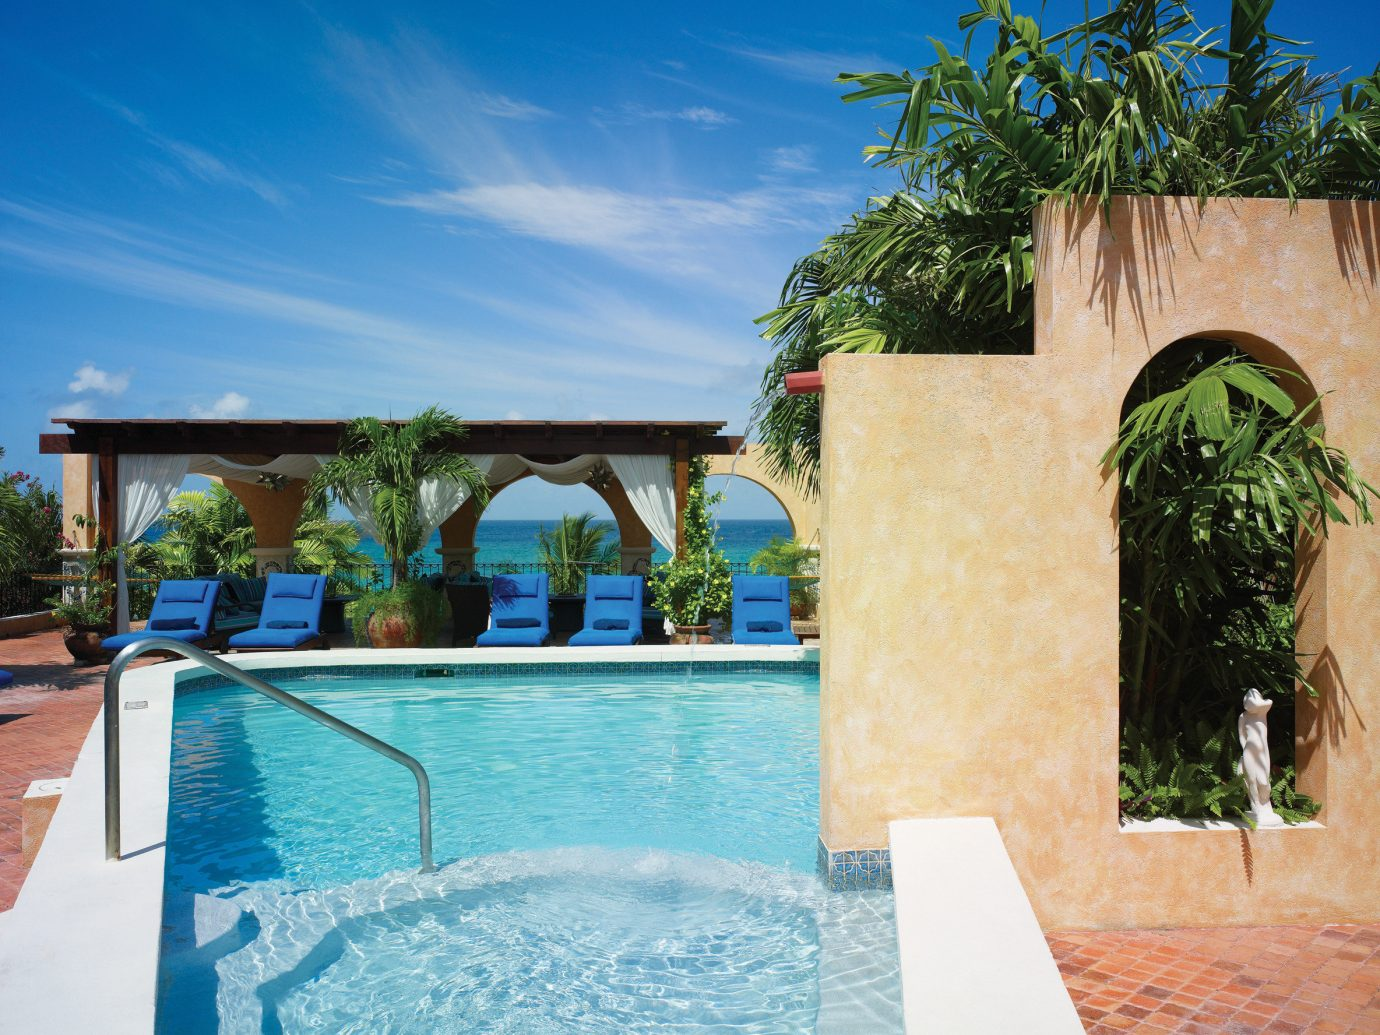 Hotels outdoor swimming pool property leisure building estate Pool vacation Resort Villa house home hacienda backyard real estate mansion blue stone